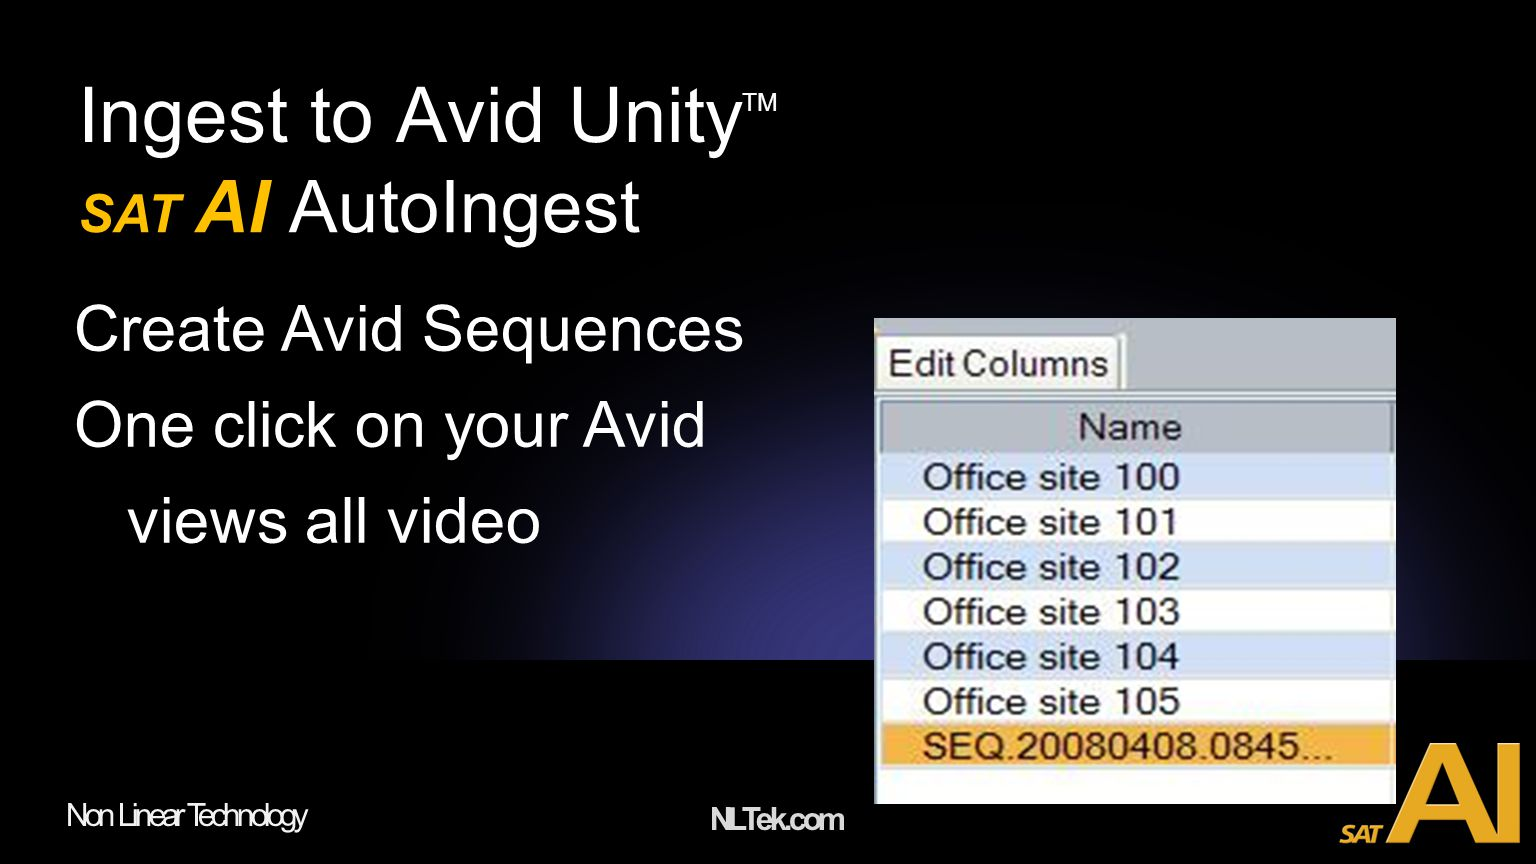 NLTek.com Non Linear Technology Ingest to Avid Unity TM SAT AI AutoIngest Create Avid Sequences One click on your Avid views all video